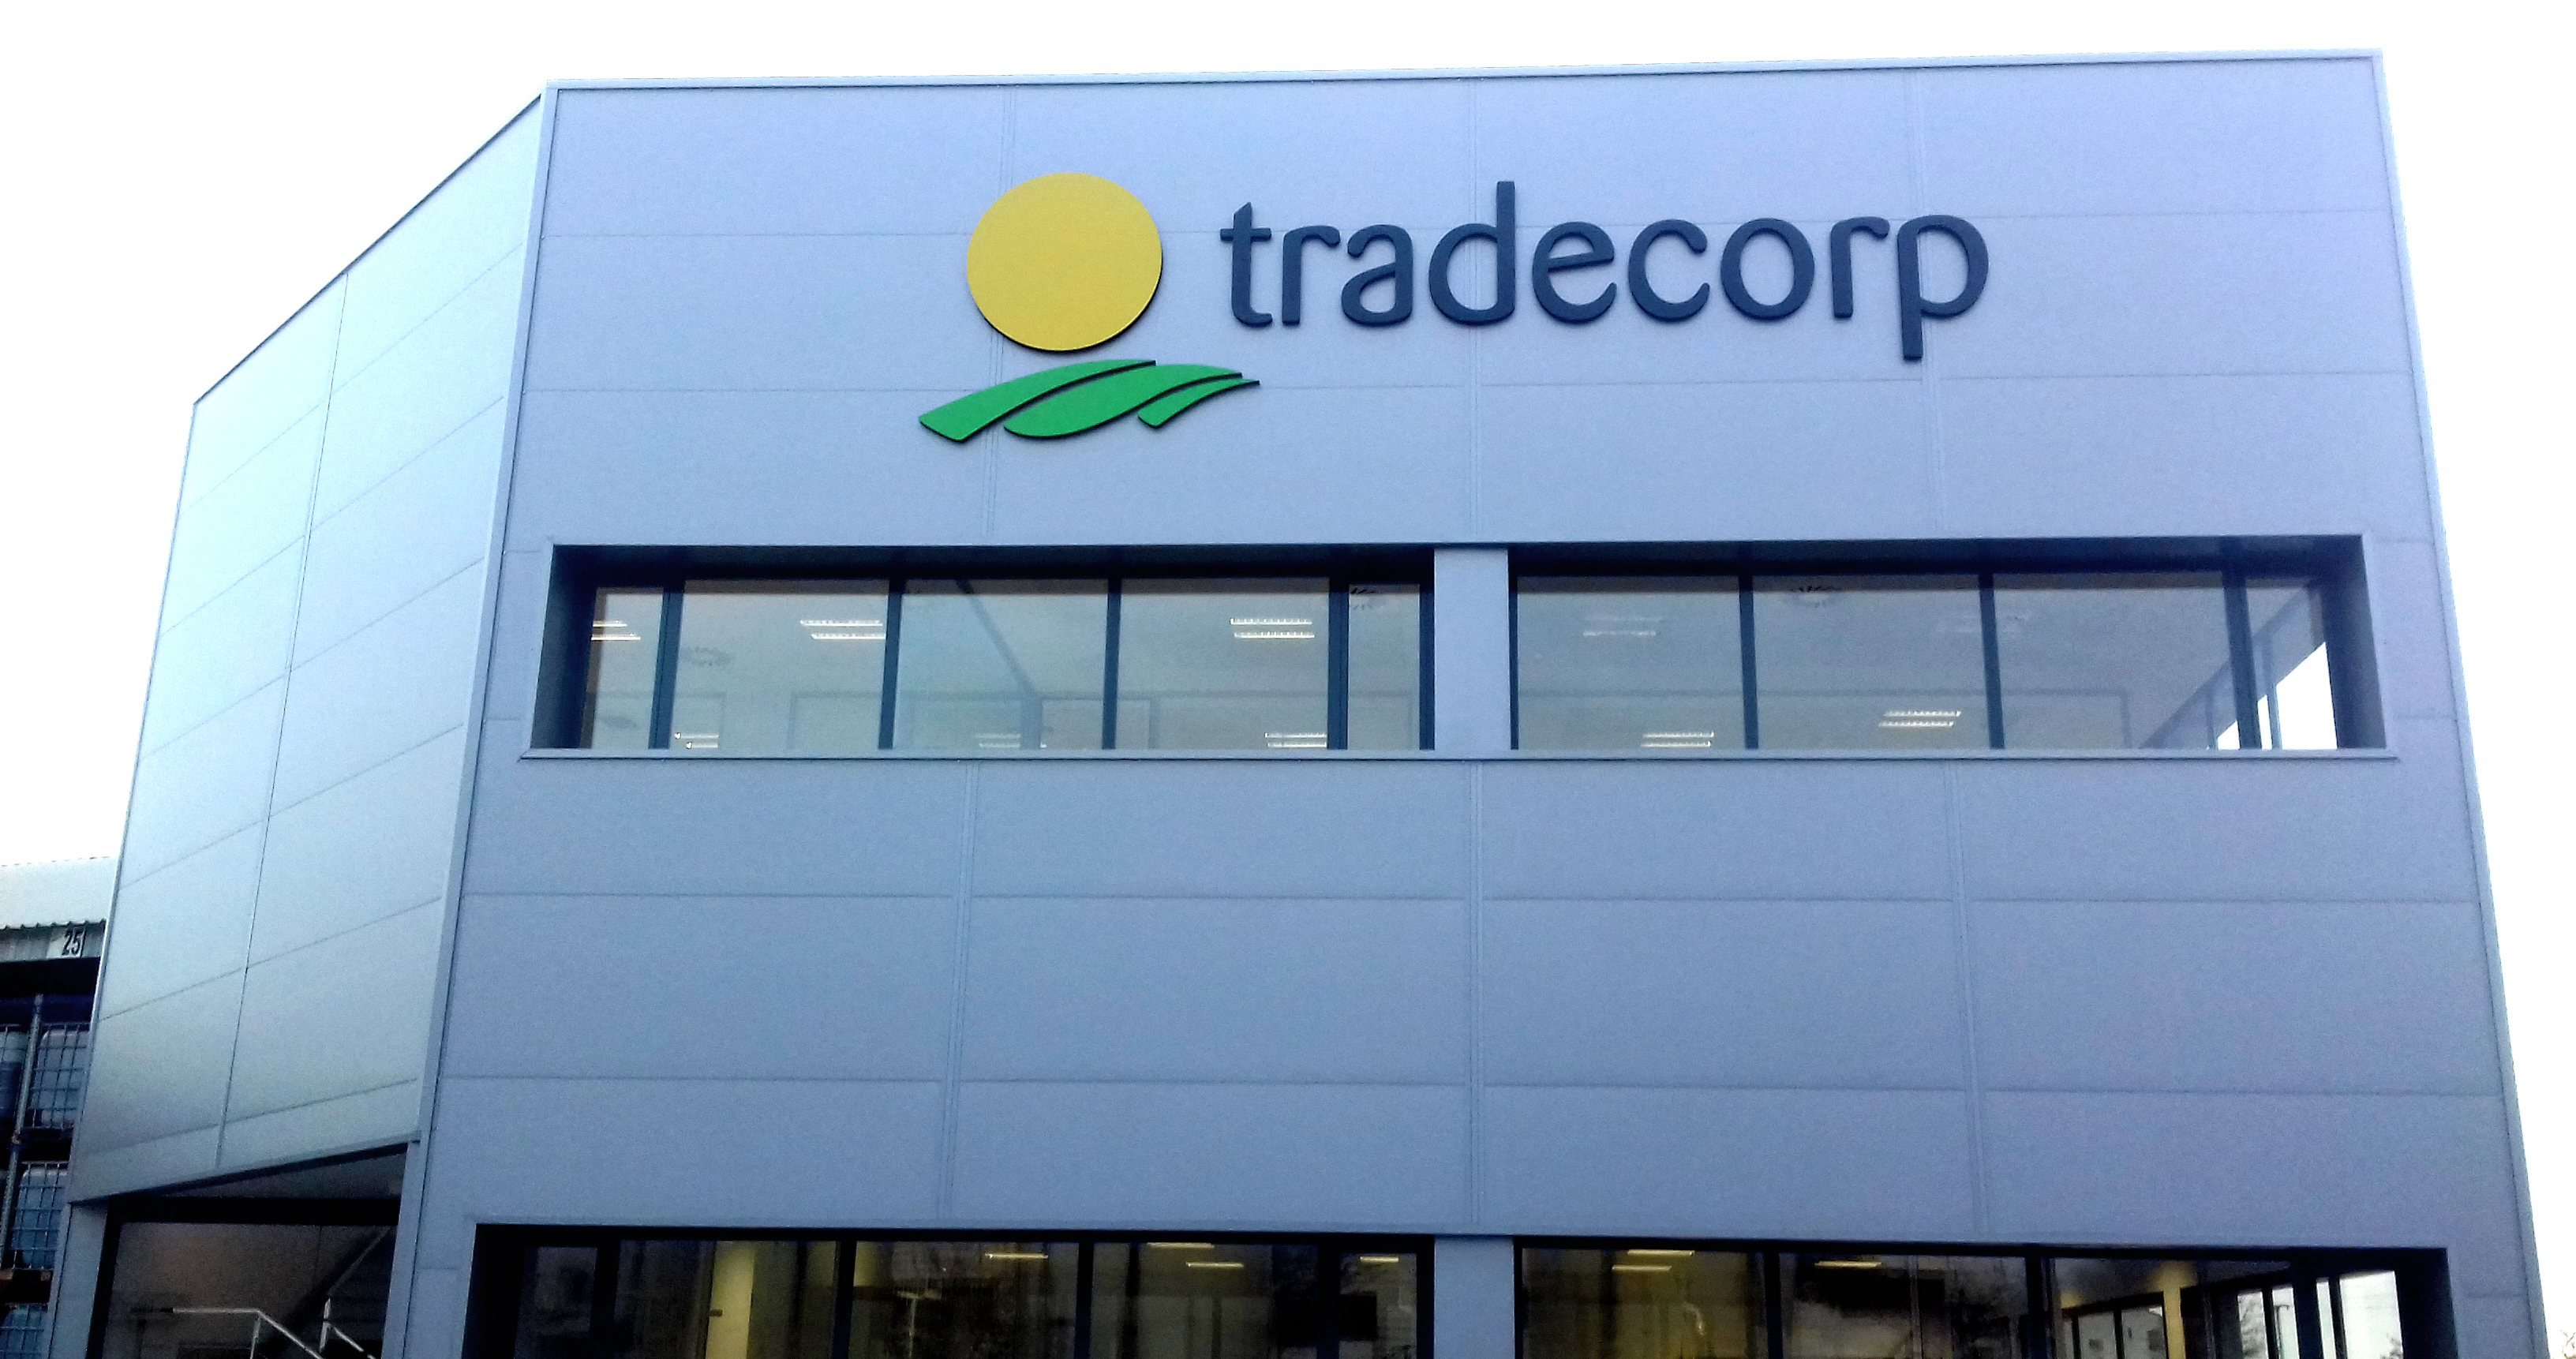 New laboratory building - Tradecorp factory in Albacete